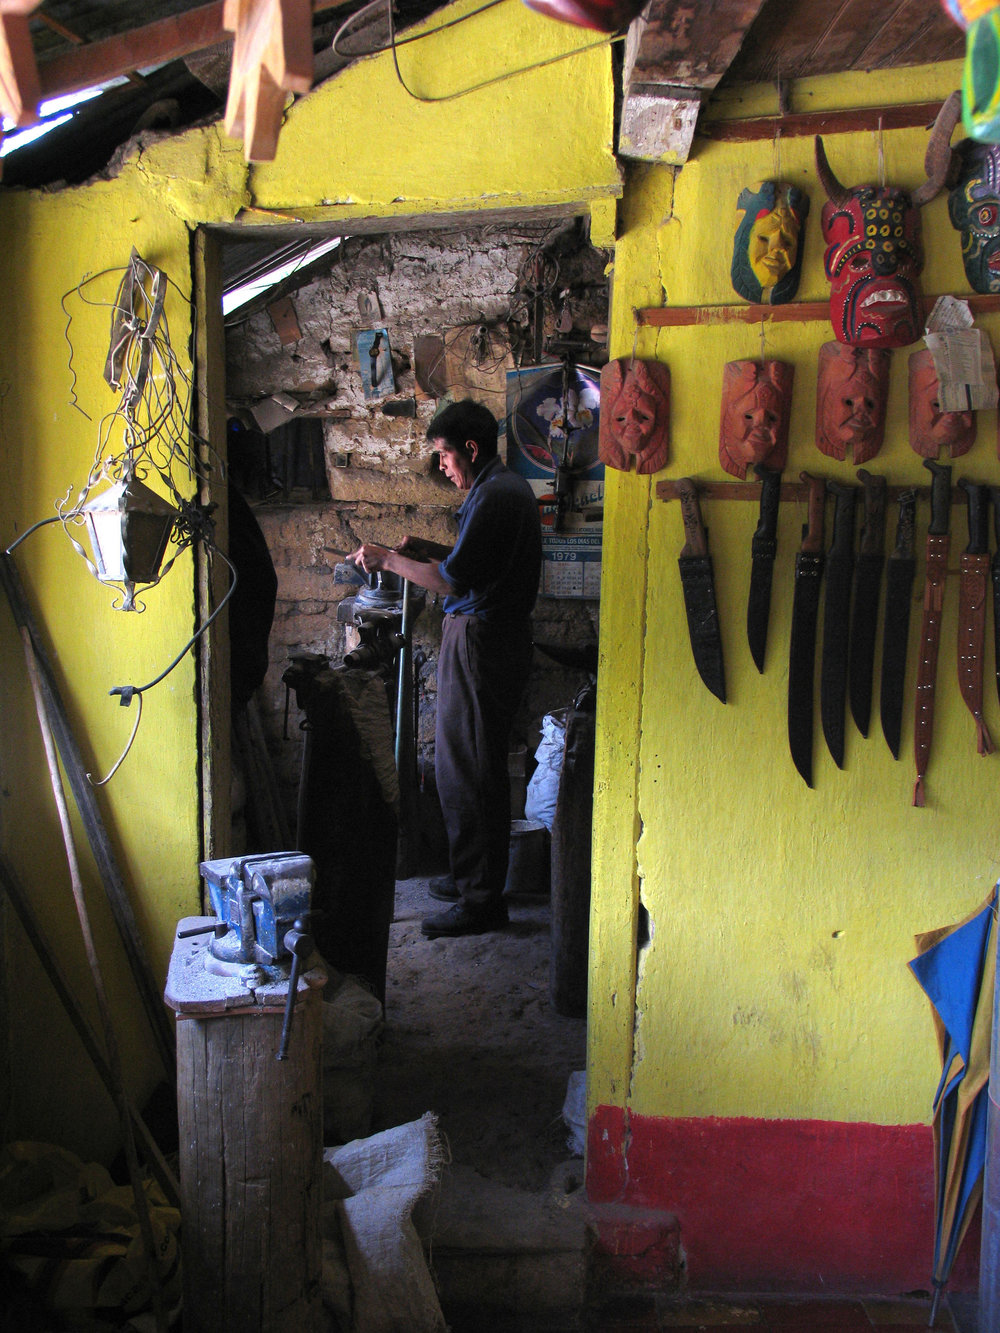 Knife maker, Chichicastenango, Guatemala